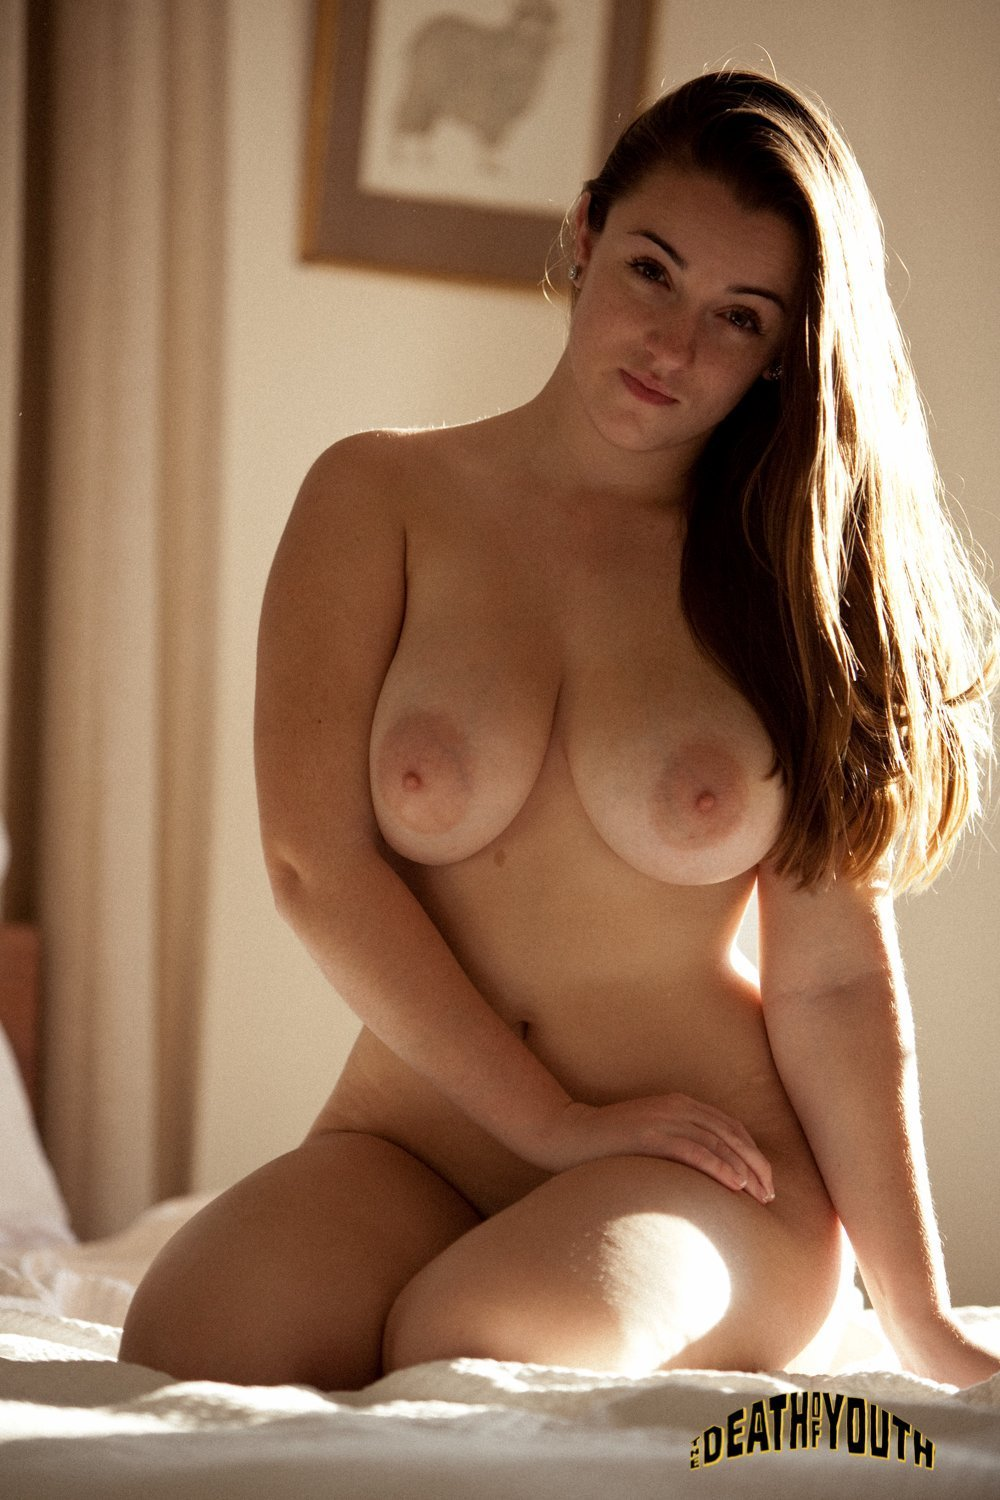 sex-curvy-beautiful-nude-women-pussy-young